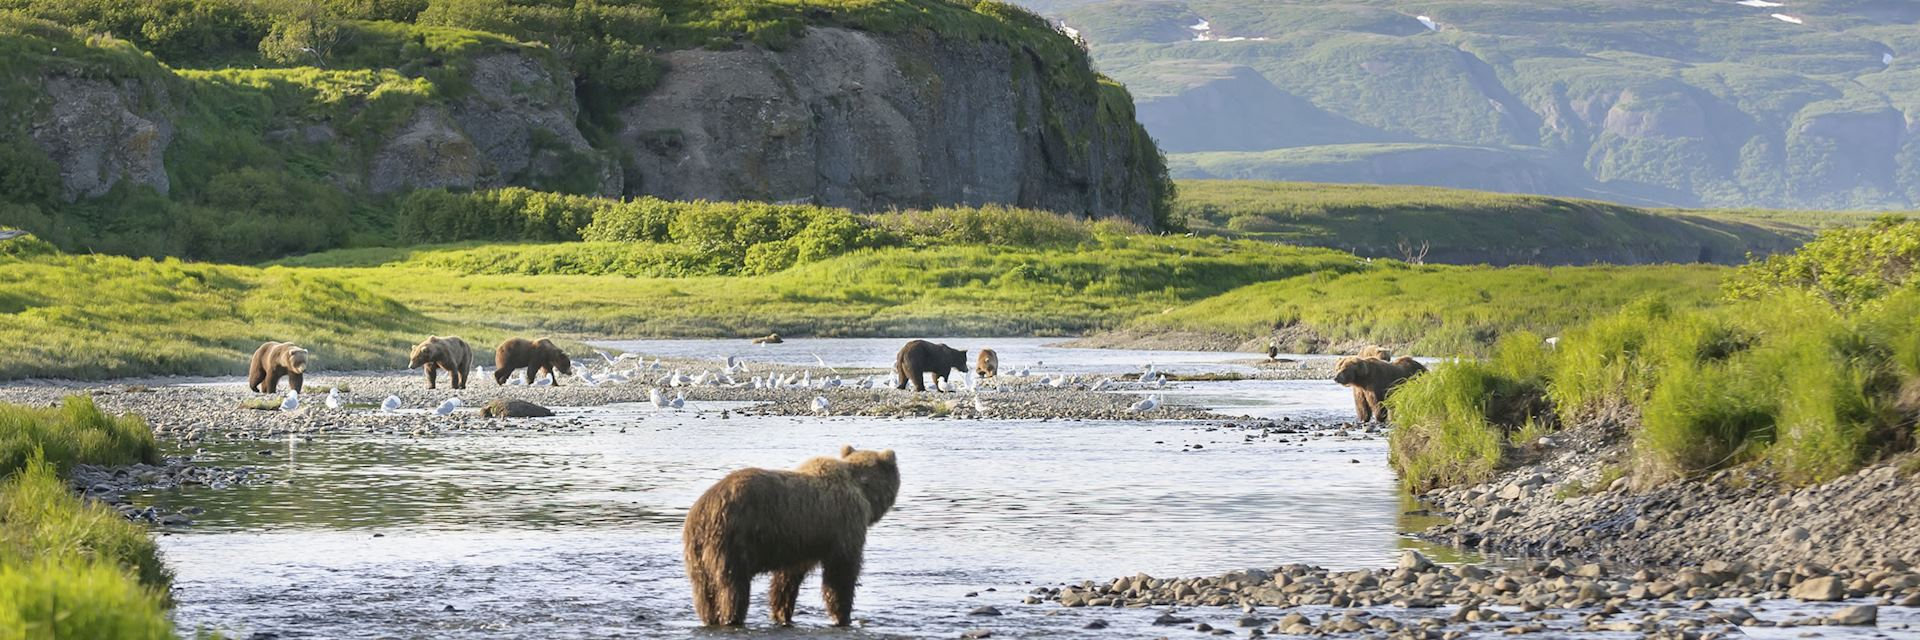 Brown bears on the Alaska Peninsula